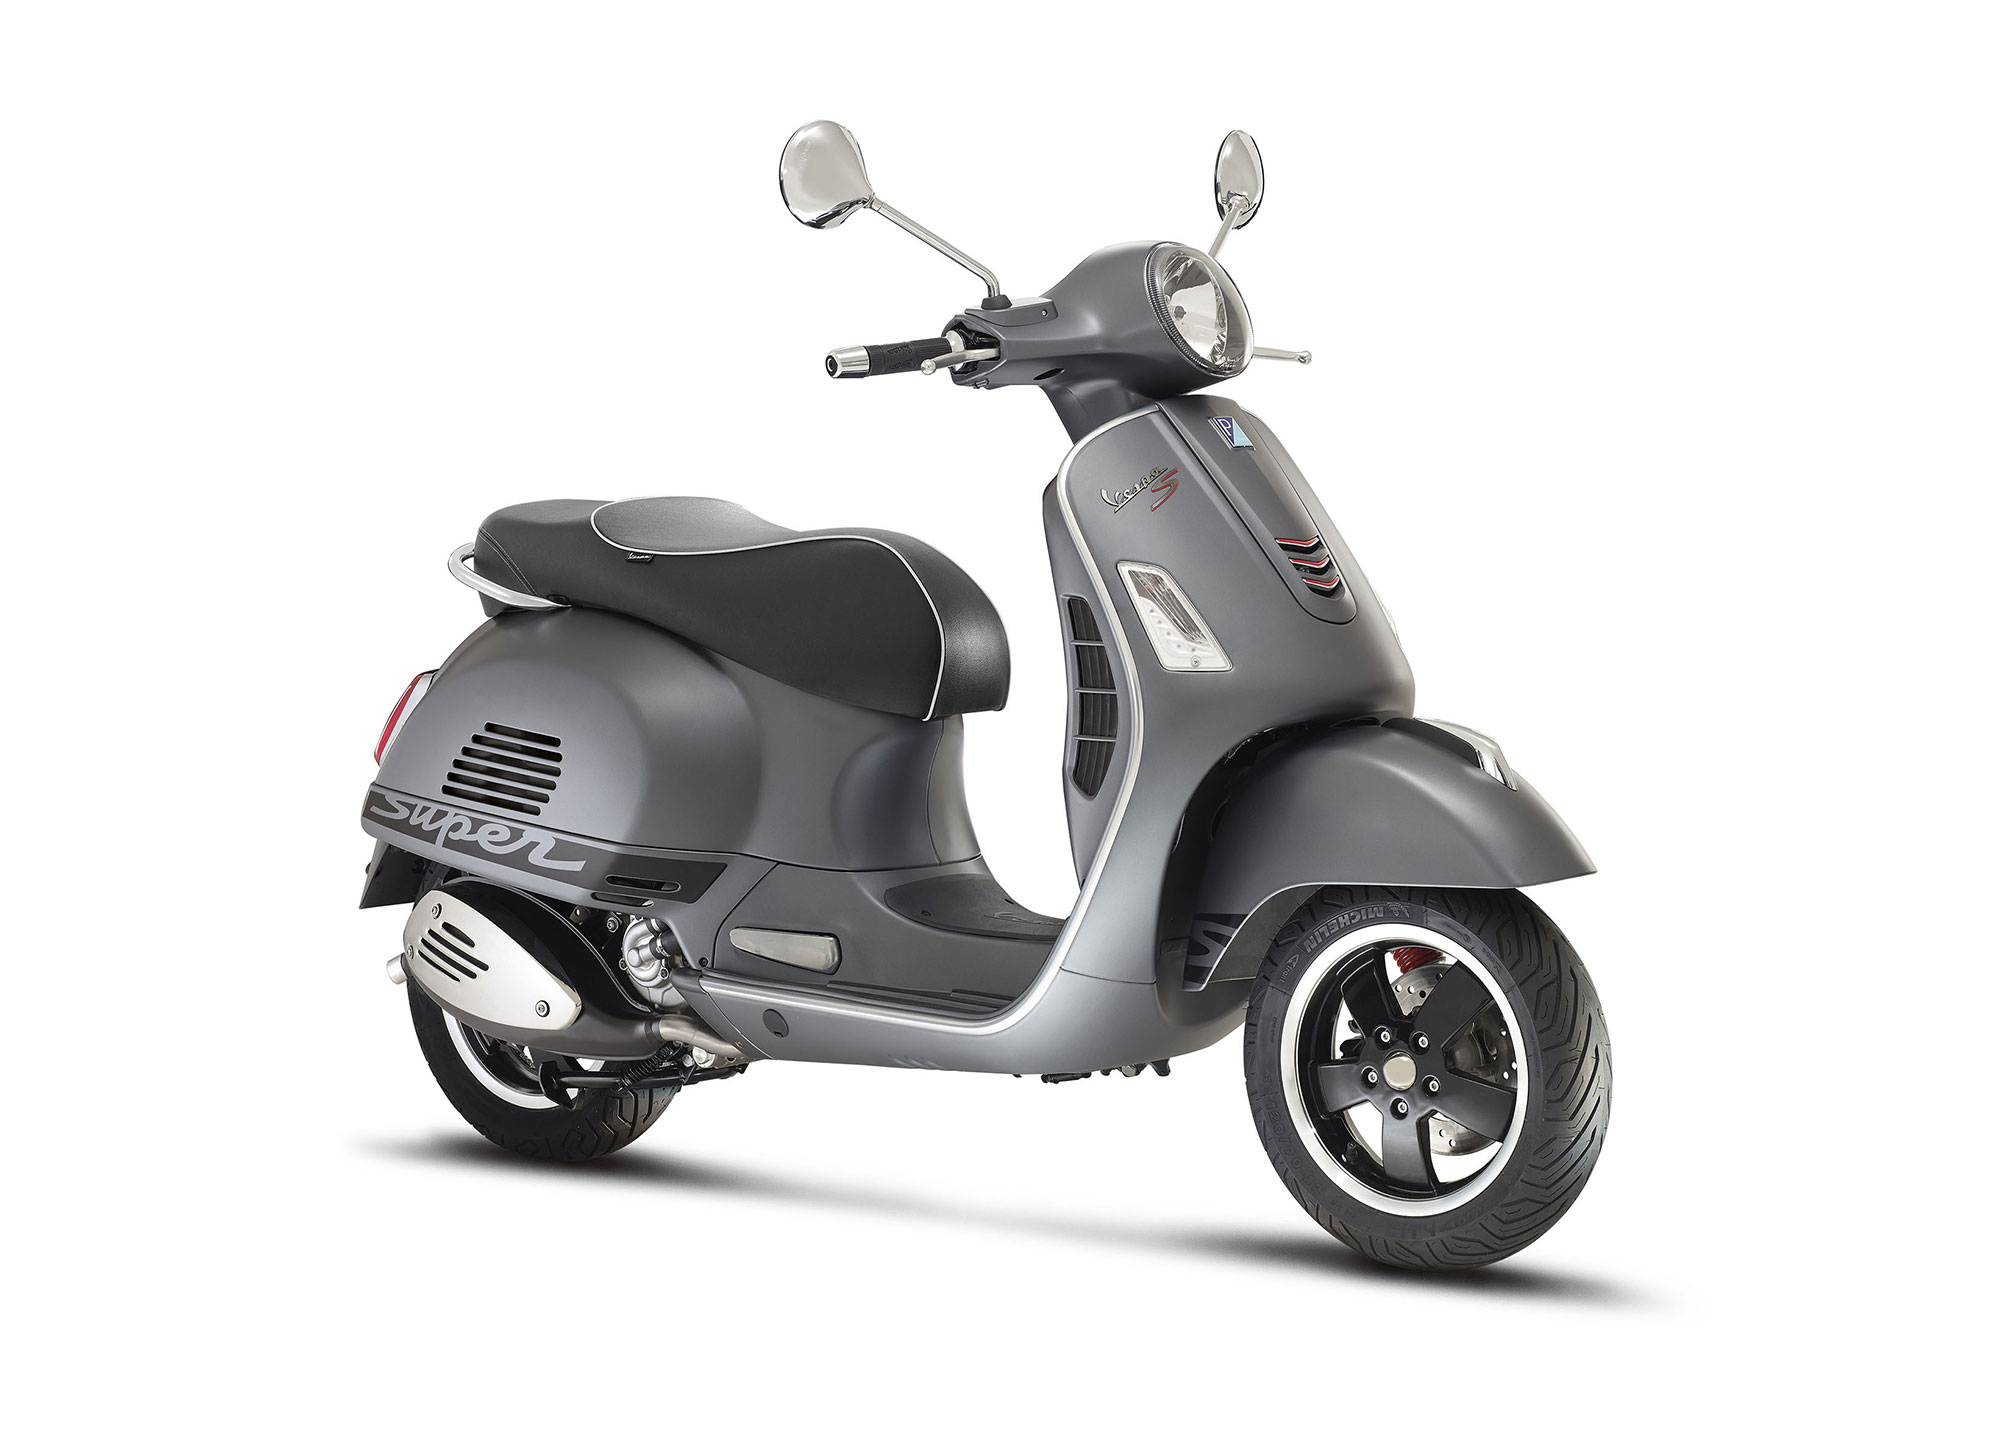 2015 vespa gts 300 range first look motorcycle usa - 2016 Vespa Gts300 Super Sport Abs